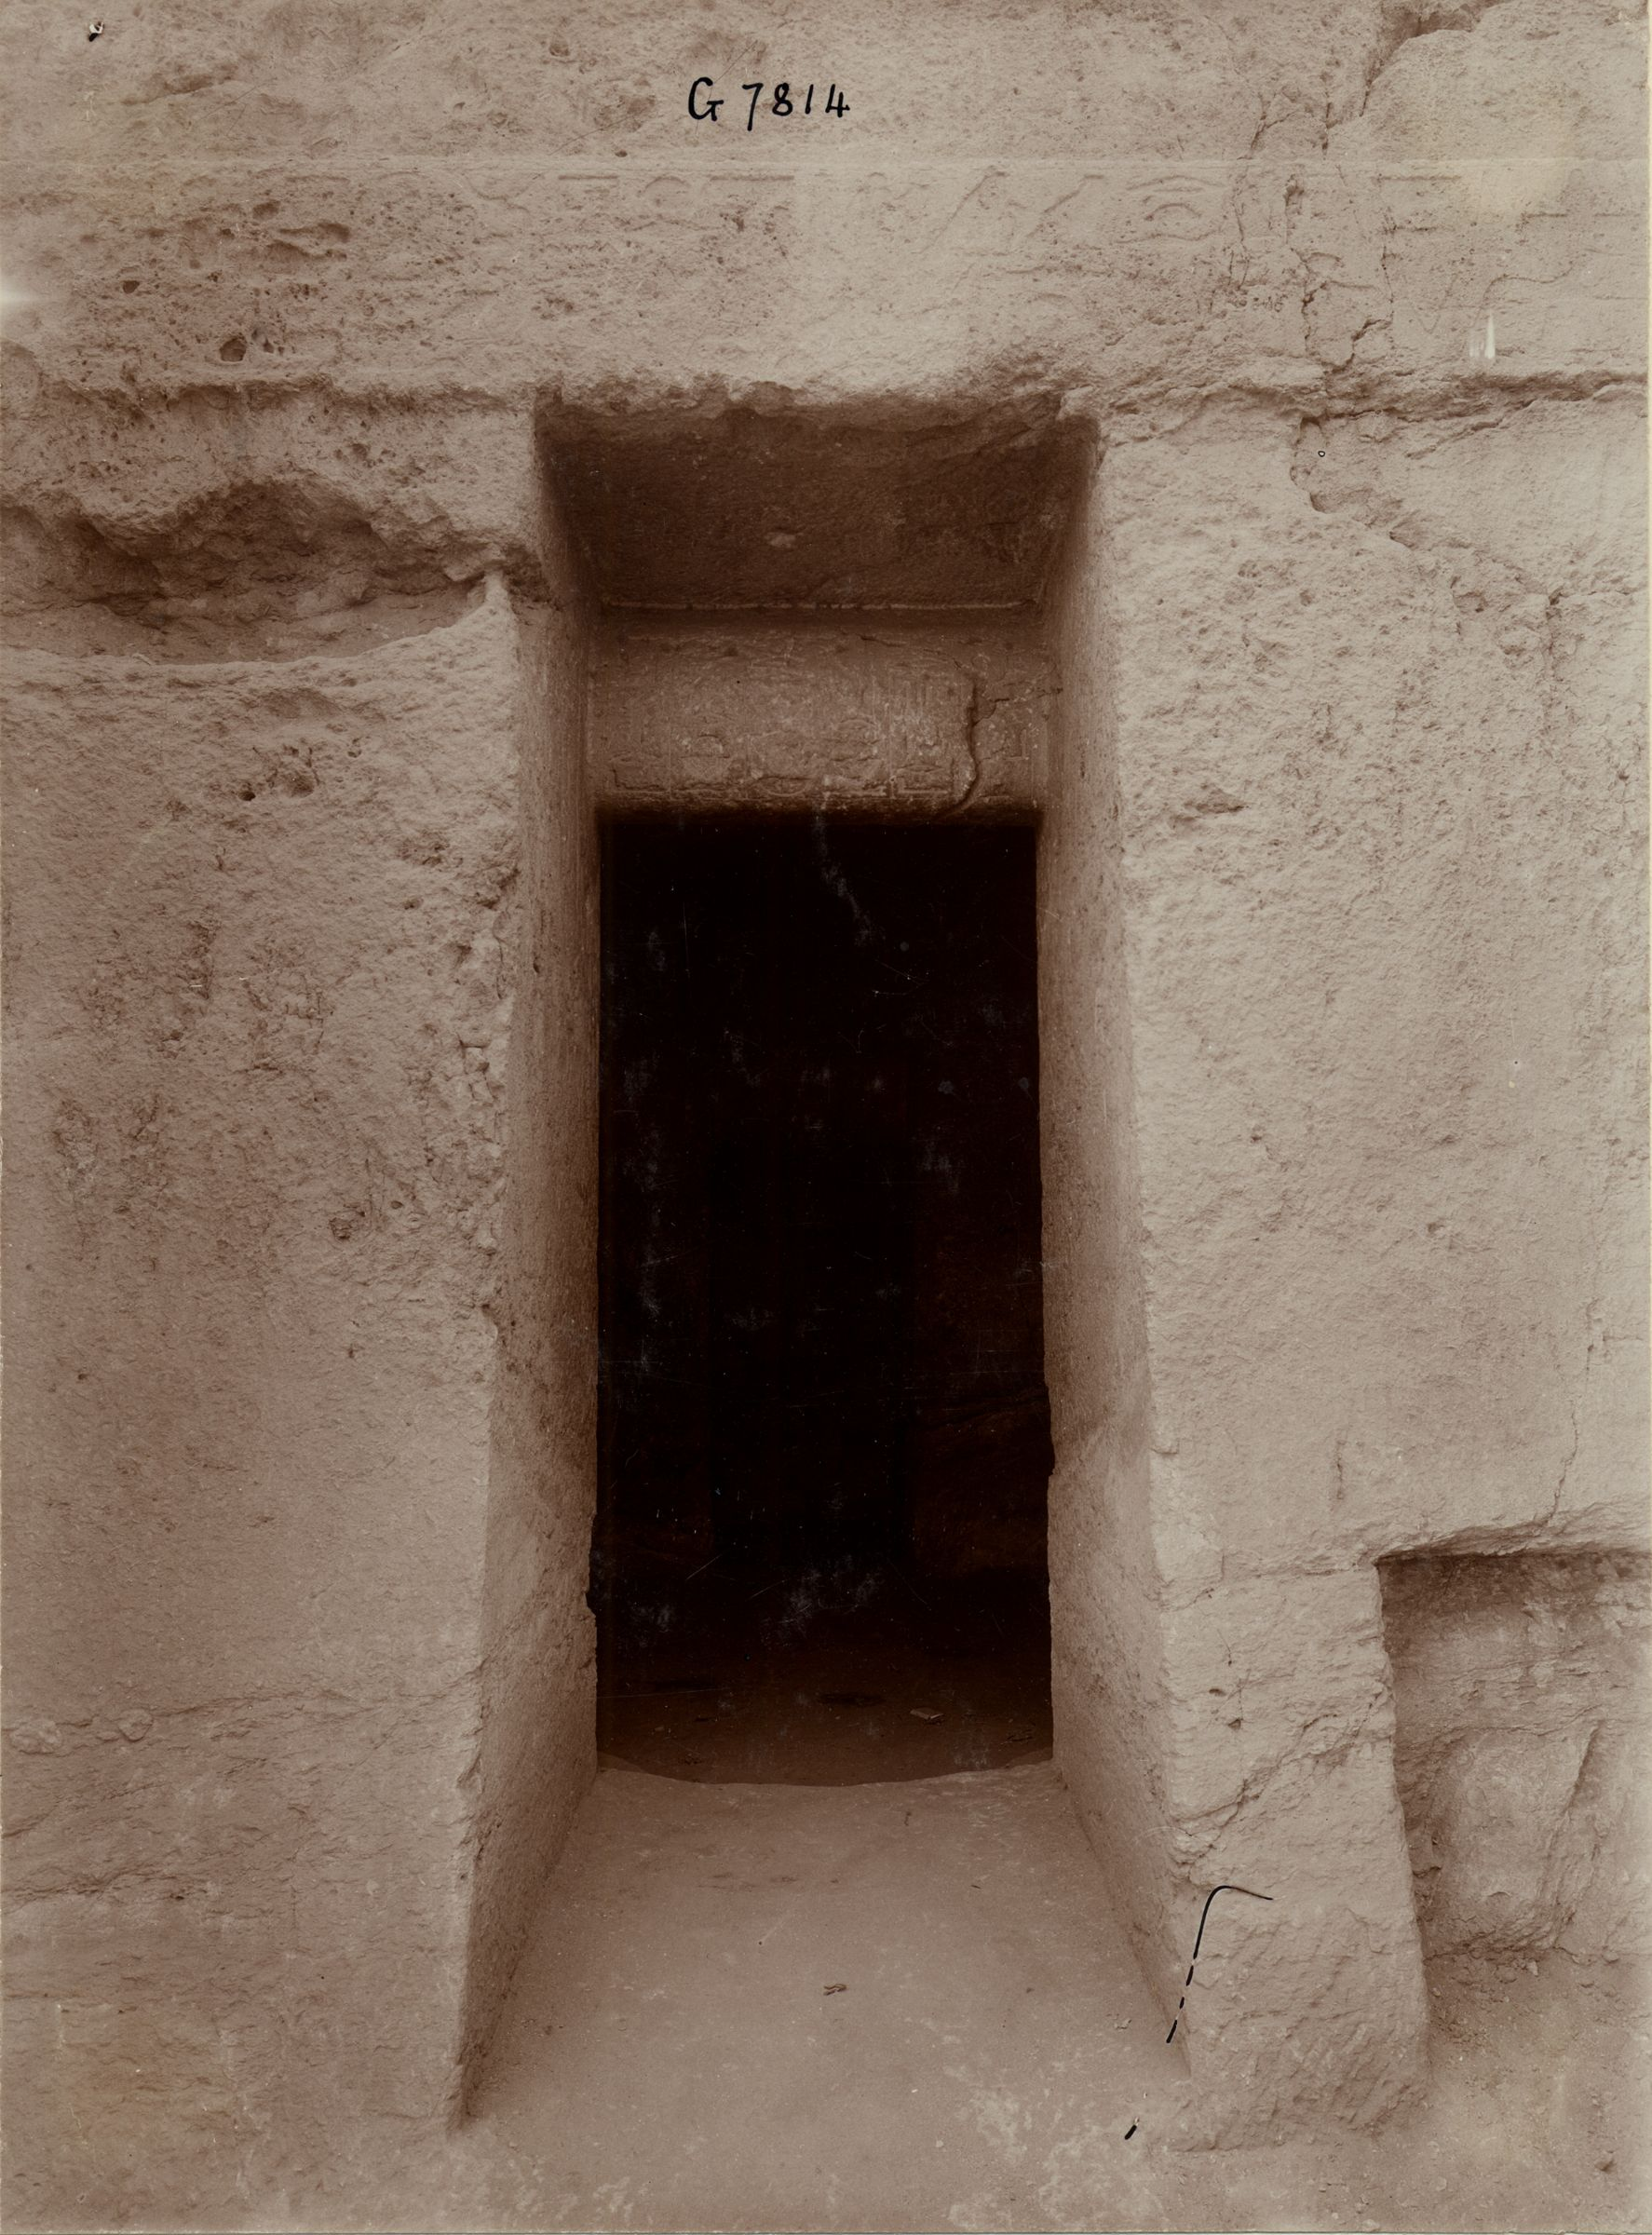 Eastern Cemetery: Site: Giza; View: G 7814